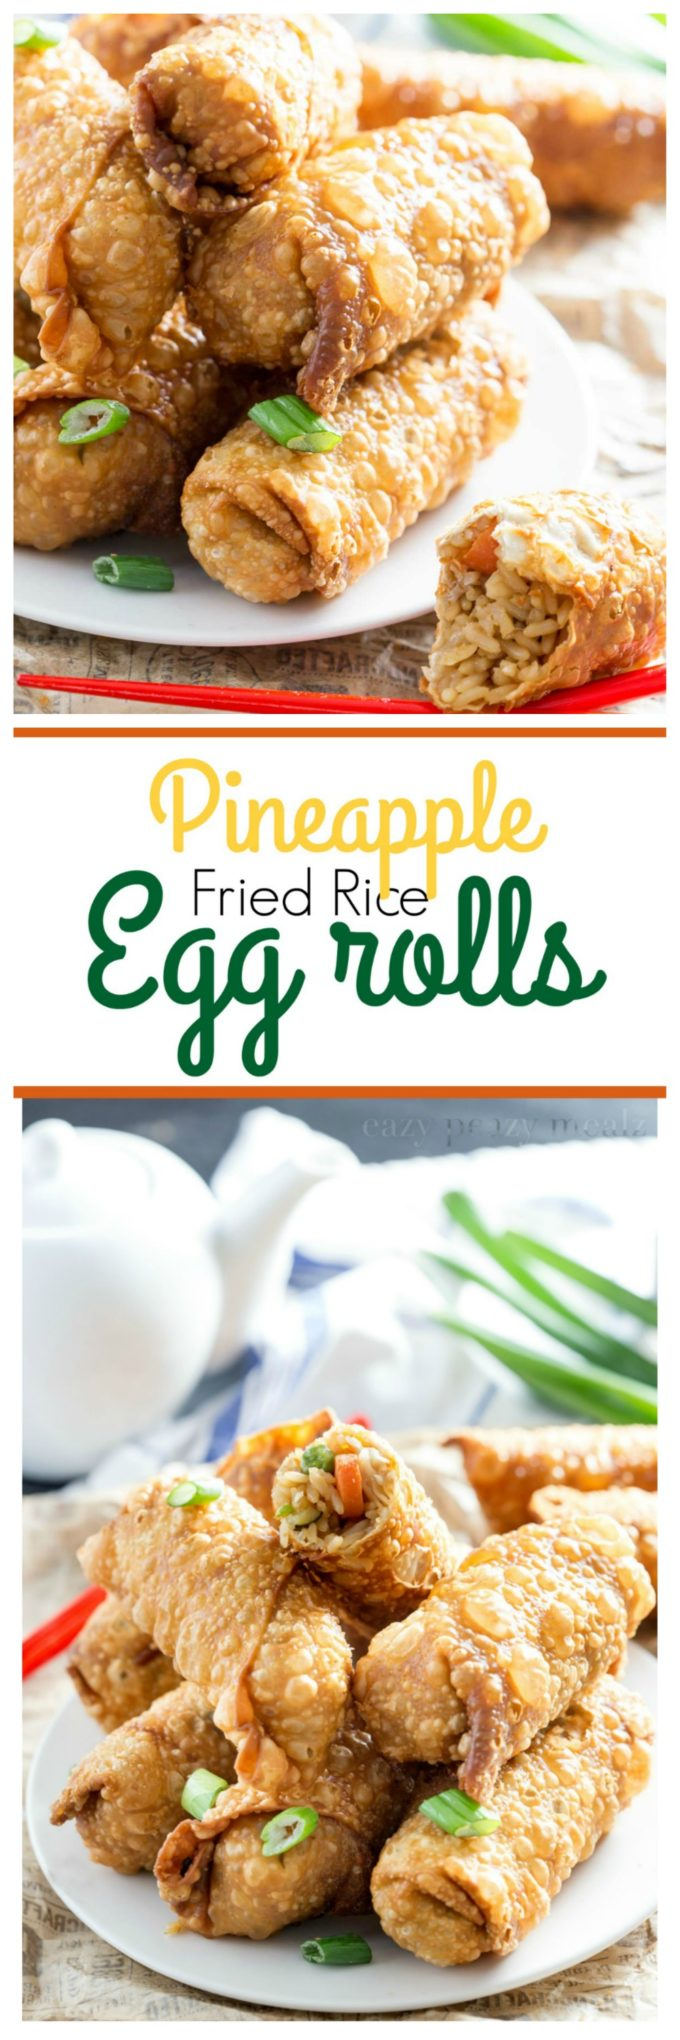 Pineapple fried rice egg rolls are a fantastic meal